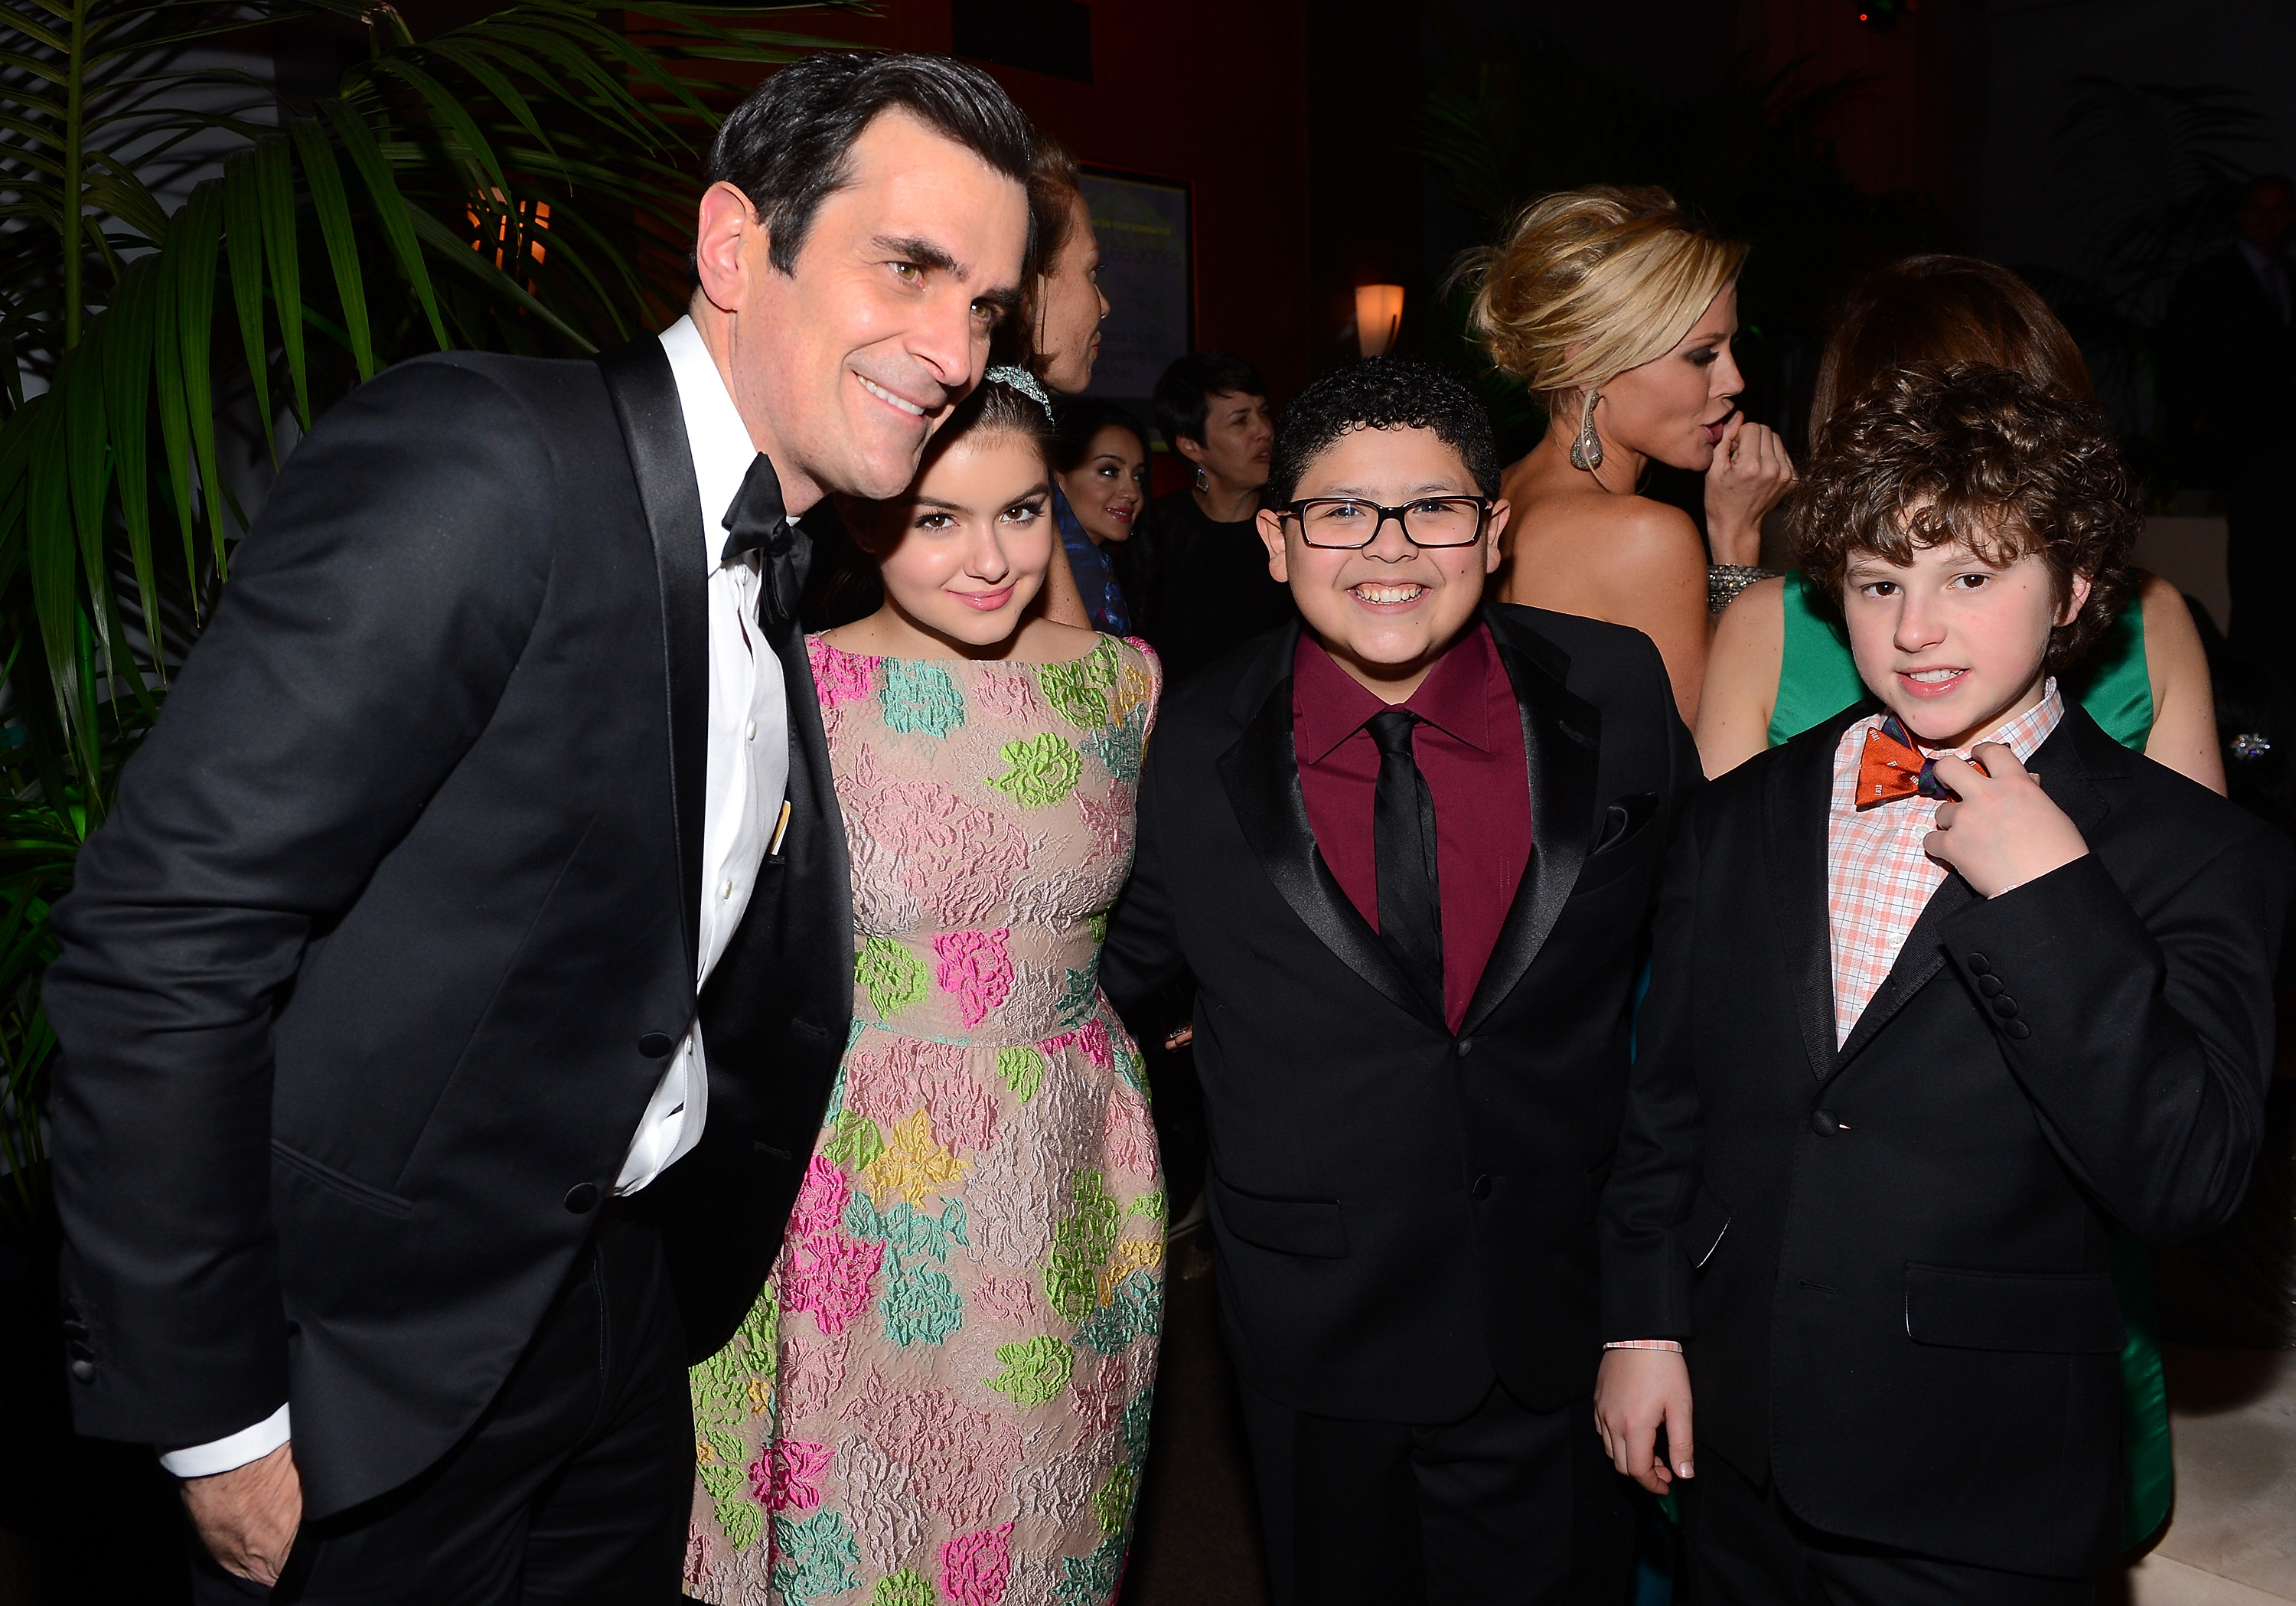 Ty Burrell, Ariel Winter, Rico Rodriguez, and Nolan Gould attended the Fox Network Golden Globes party.